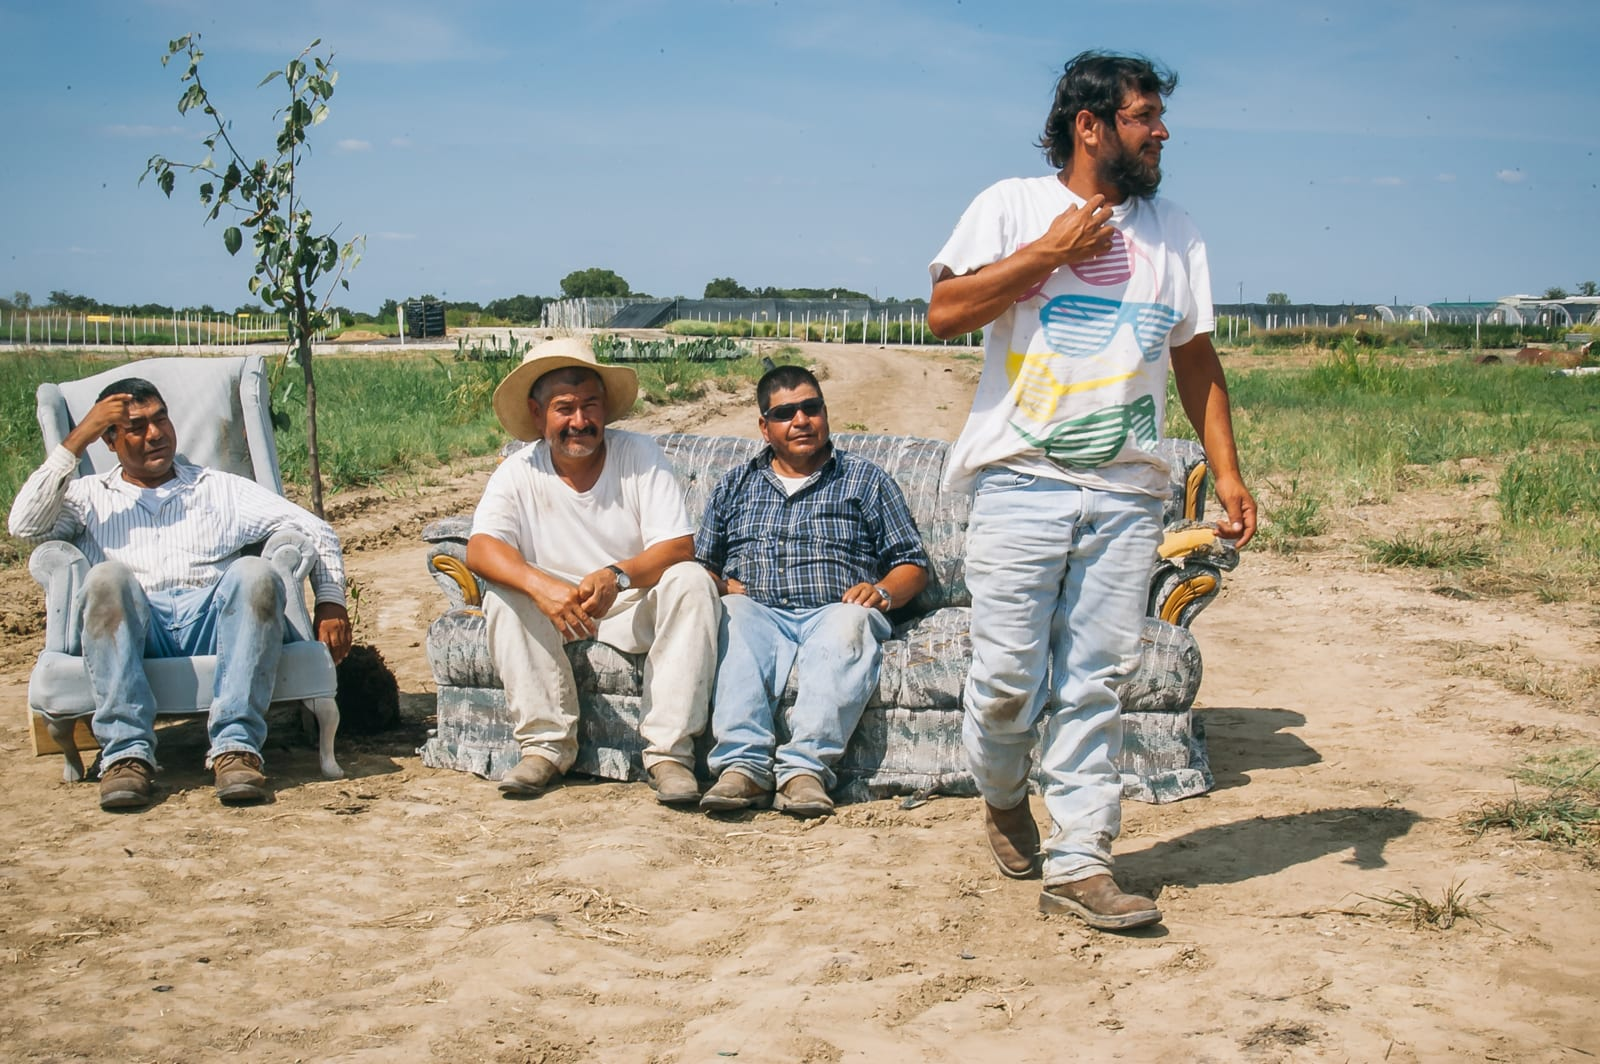 Mexican farmworkers on a tree farm in East Texas